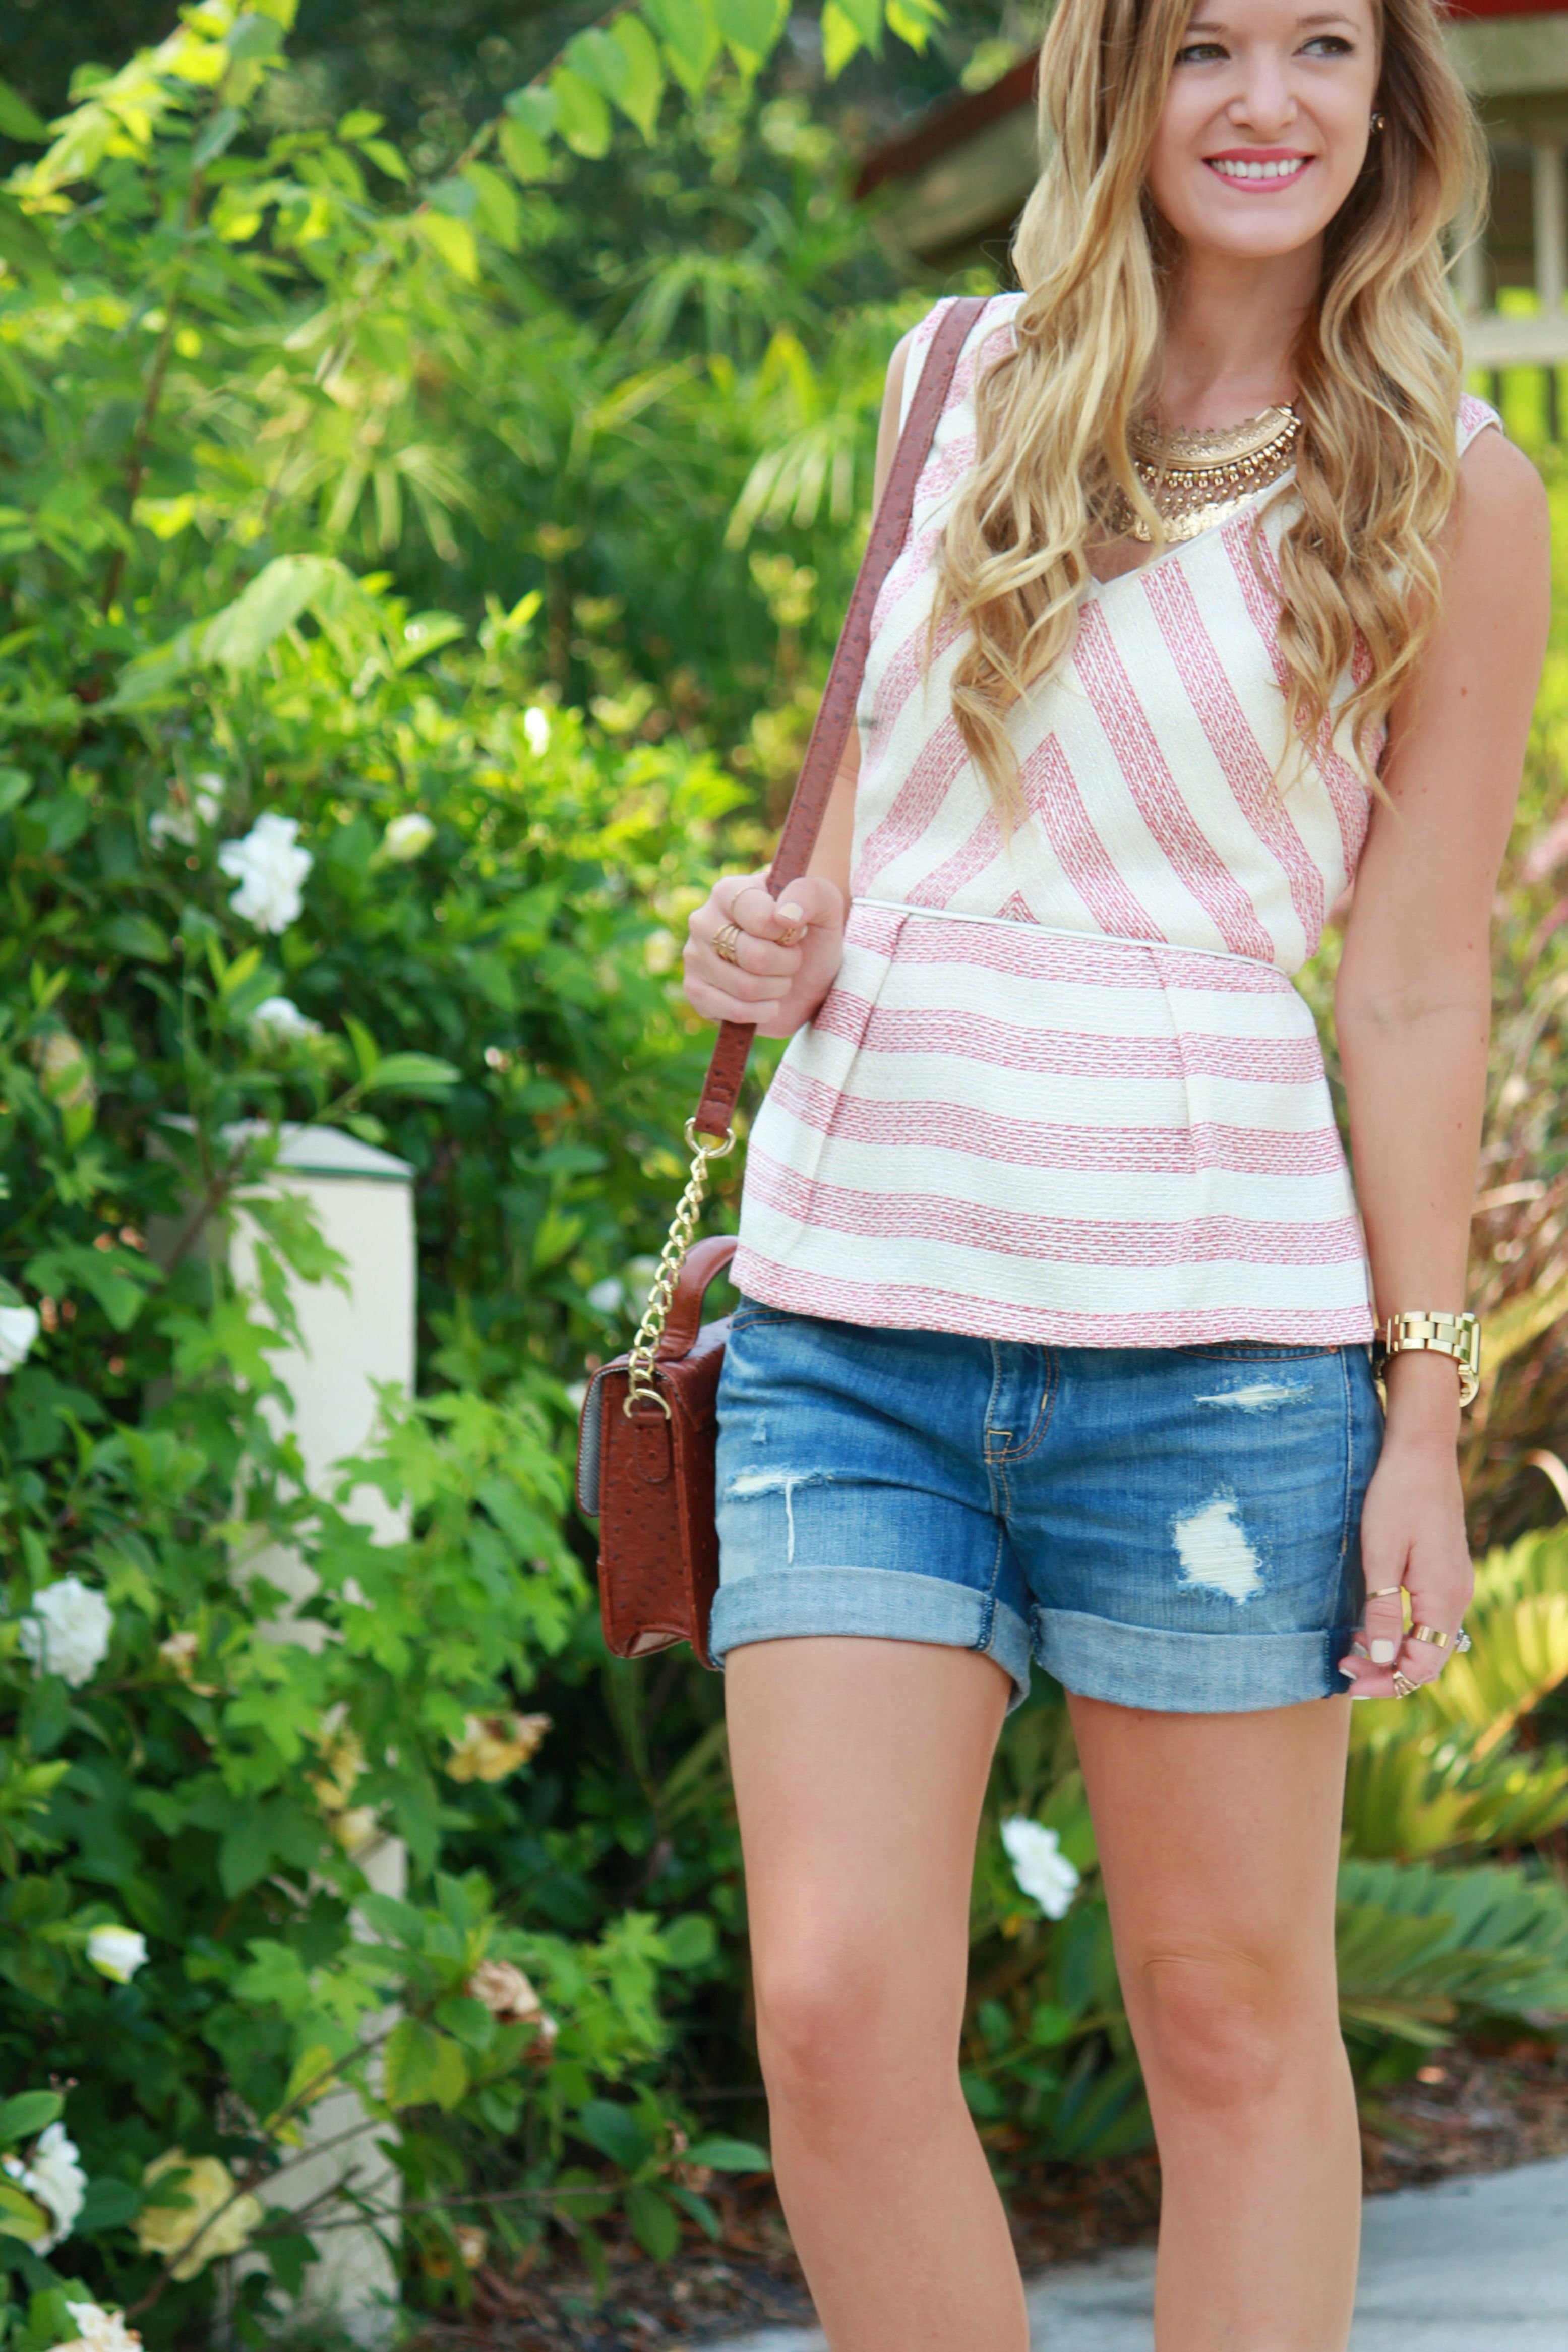 skies are blue top, gianni bini sandals, american eagle shorts, boyfriend shorts, peplum top, forever 21 coin necklace, cross body bag, spring outfit, casual outfit